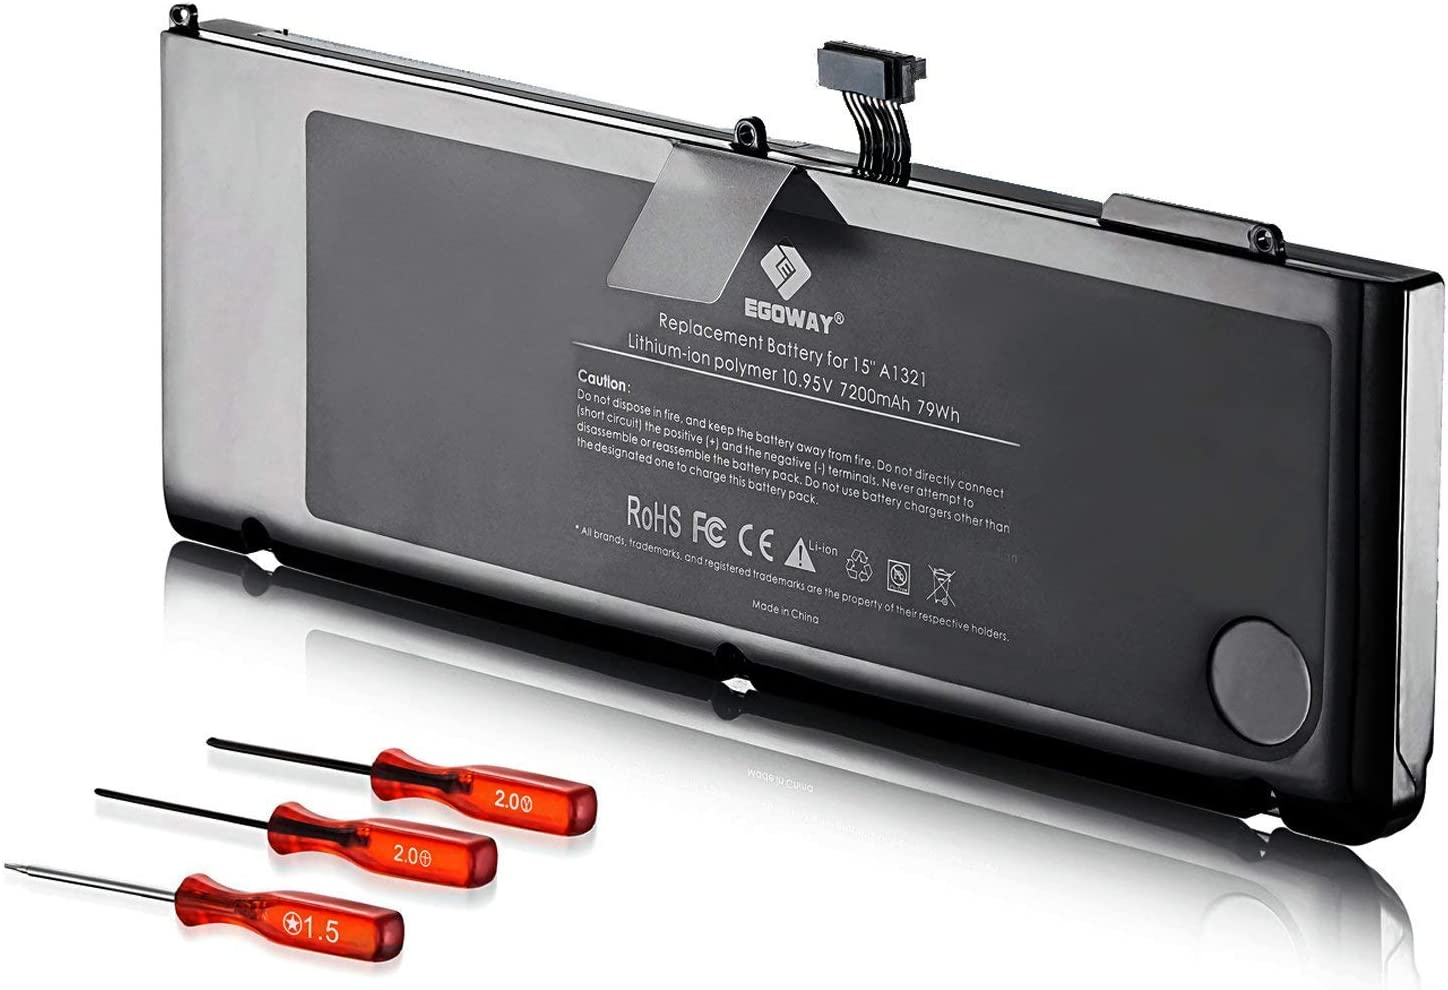 E EGOWAY Replacement Laptop Battery Compatible for MacBook Pro 15 inch A1321 A1286 Mid 2009 and 2010